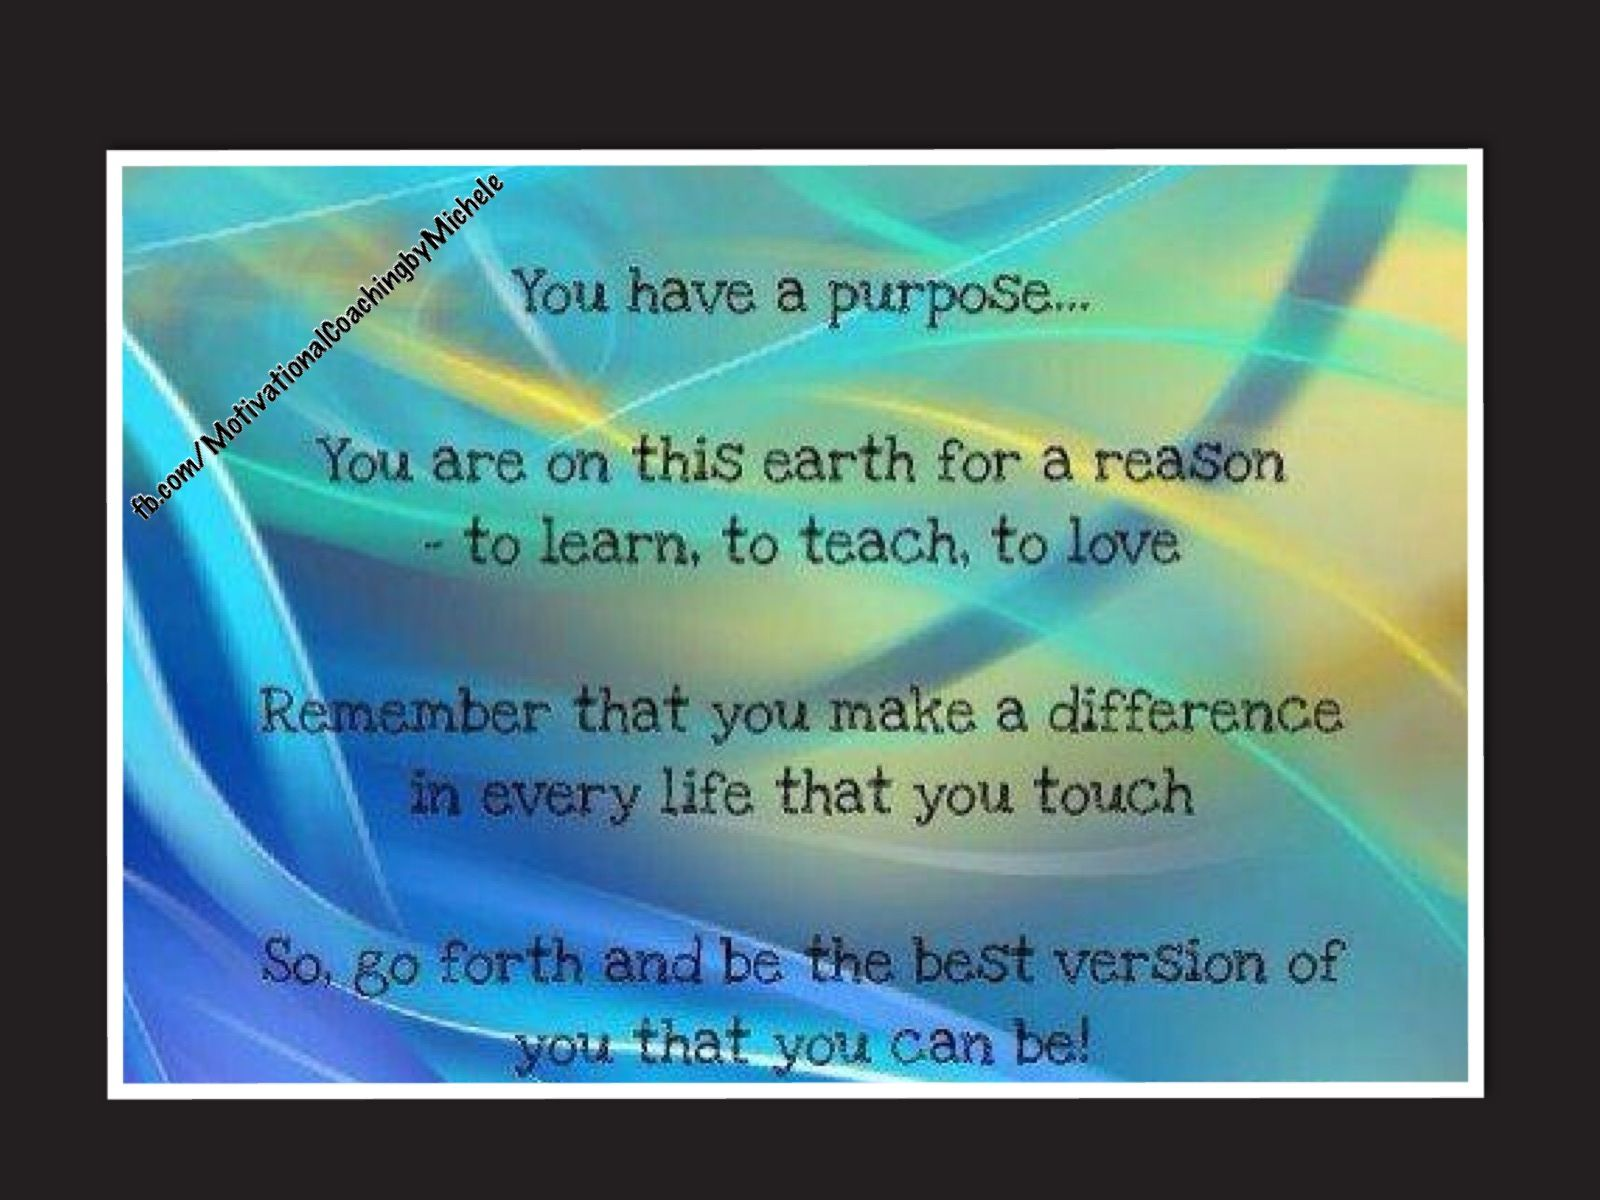 Live with passion and purpose!